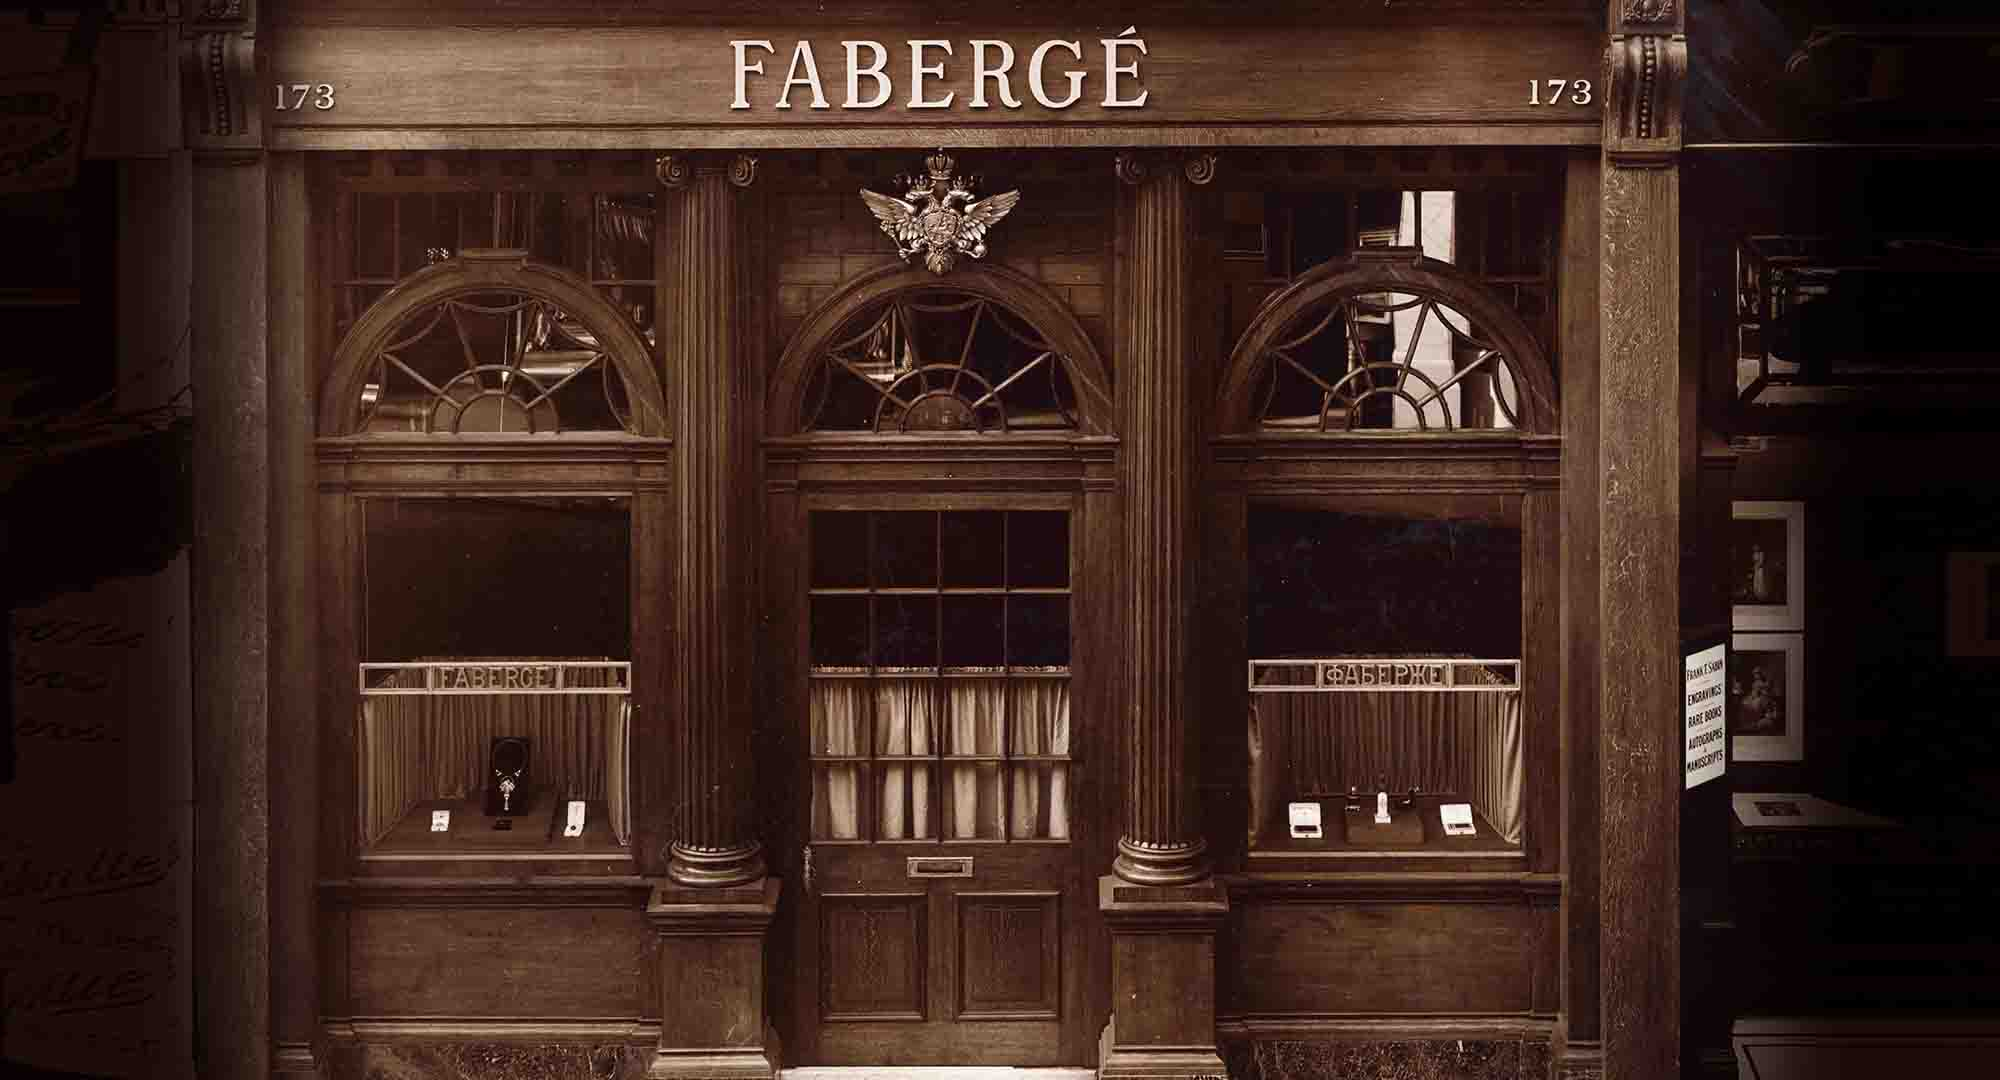 Historic Fabergé Jewellery Boutique in Russia.